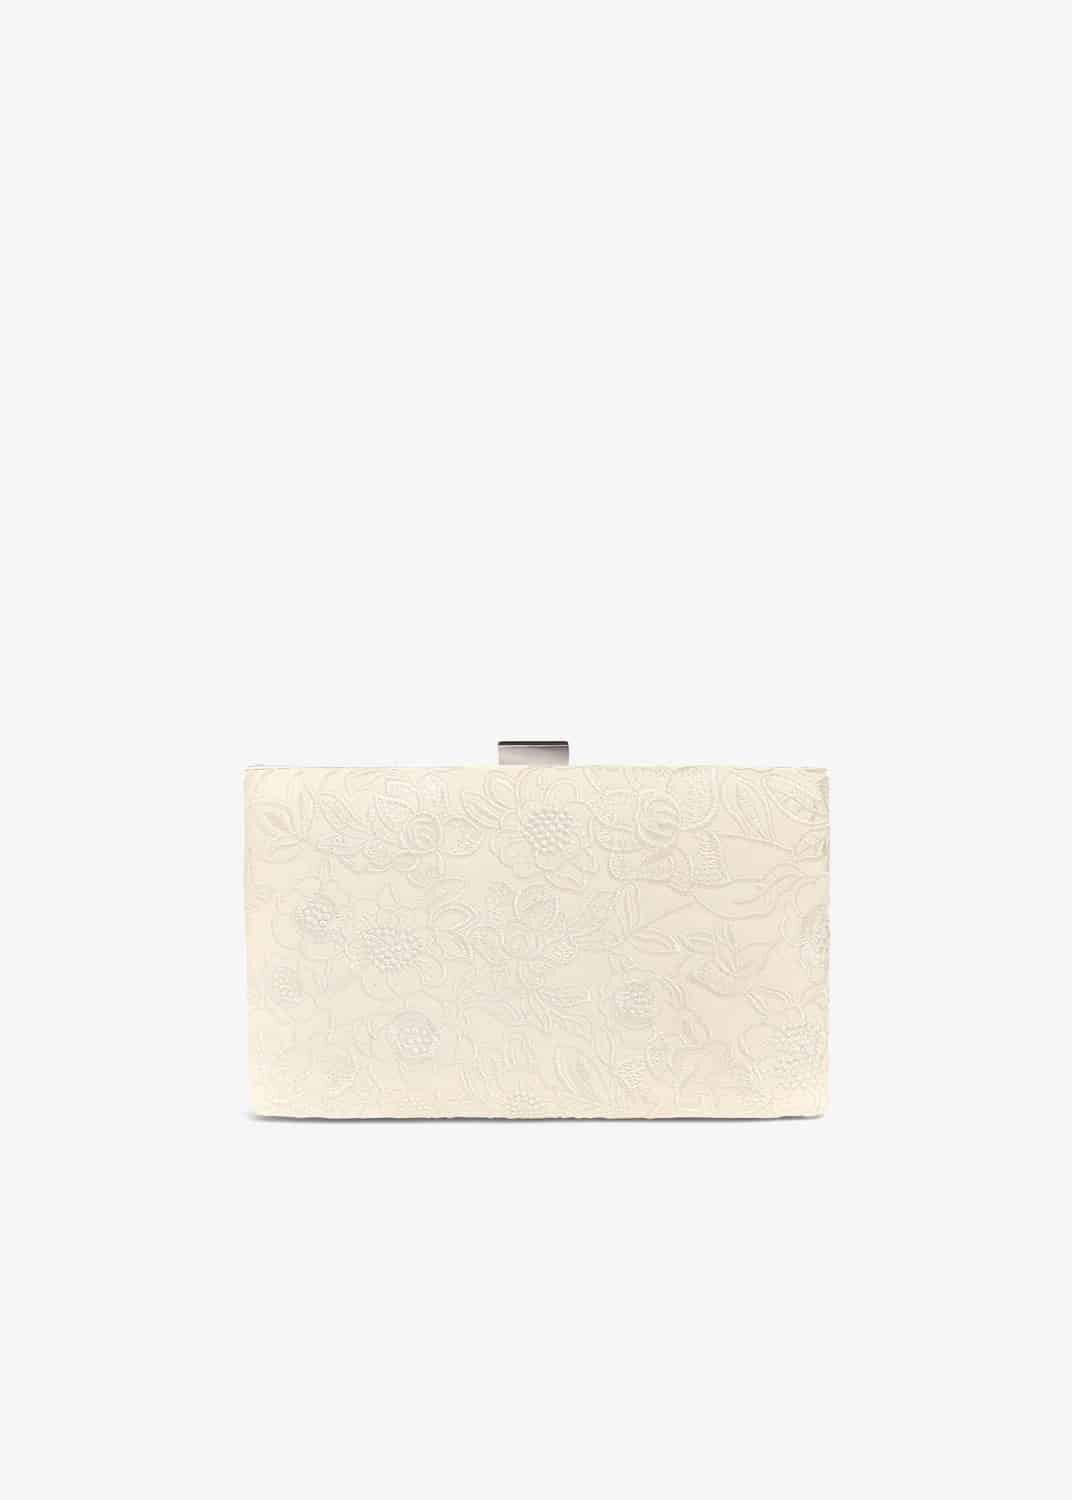 Phase Eight Ceri Embroidered Lace Clutch Bag, Cream, Bag